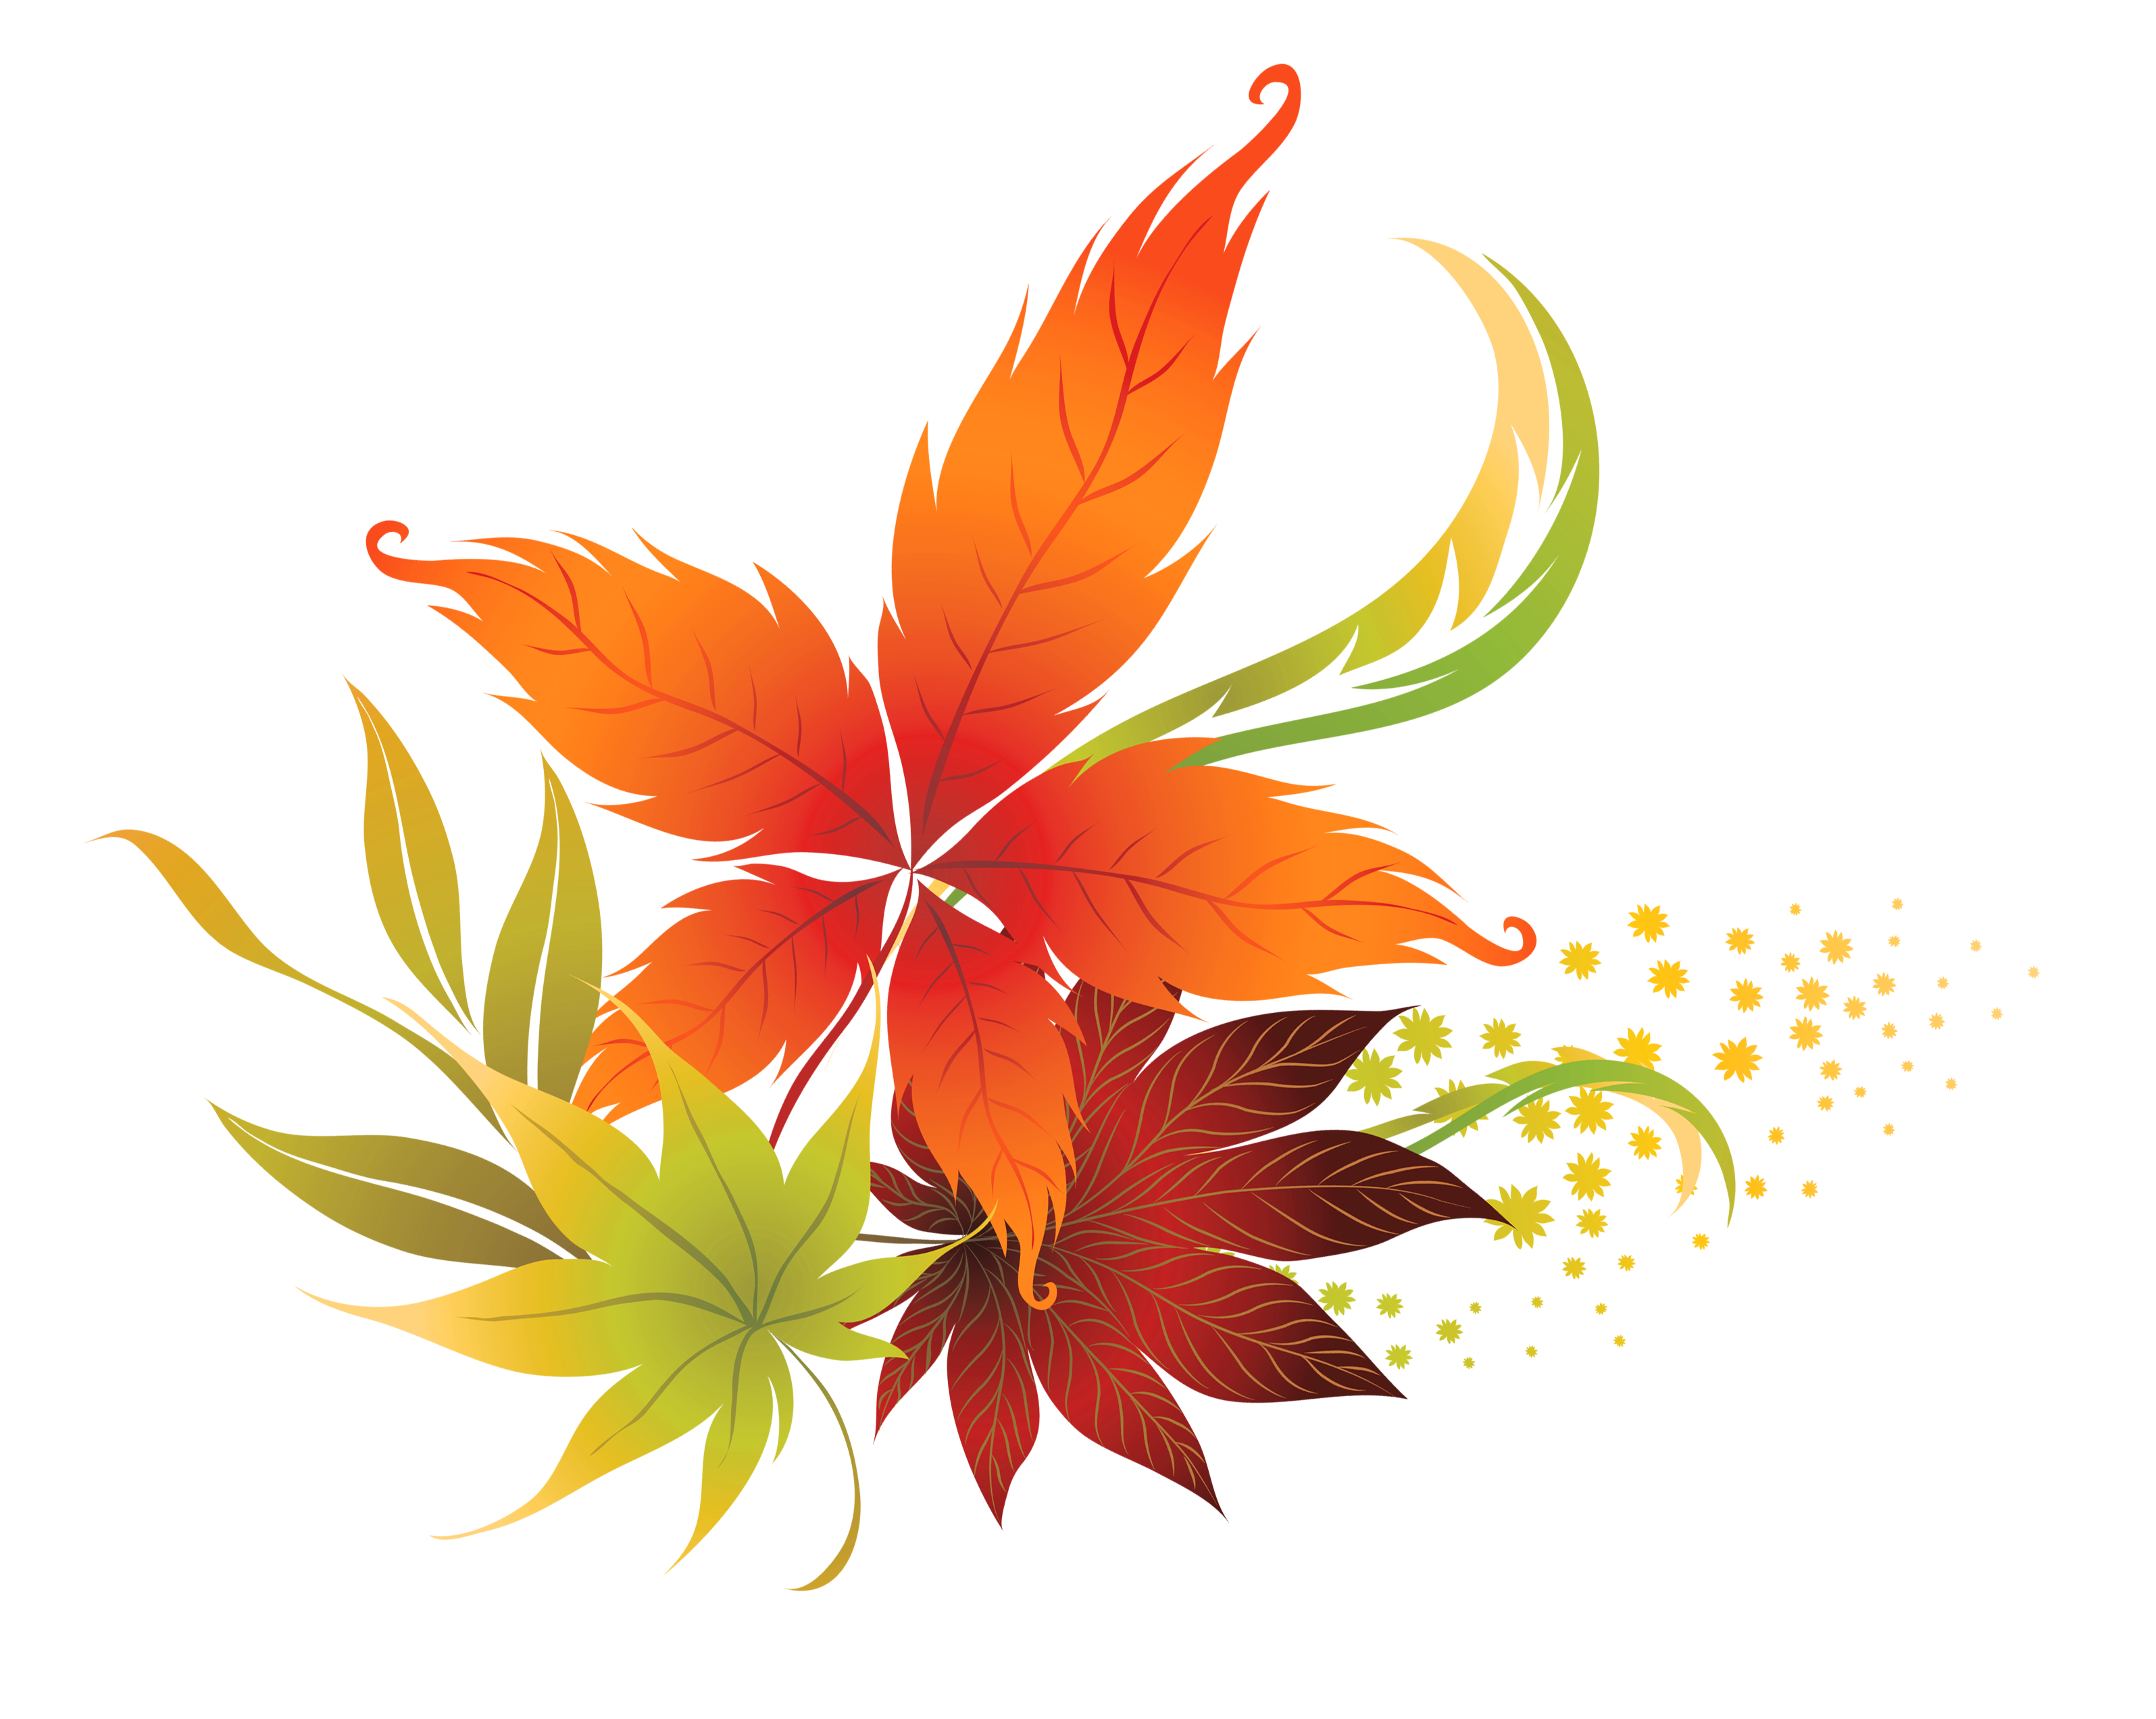 Fall leaves fall leaf clipart no background free clipart